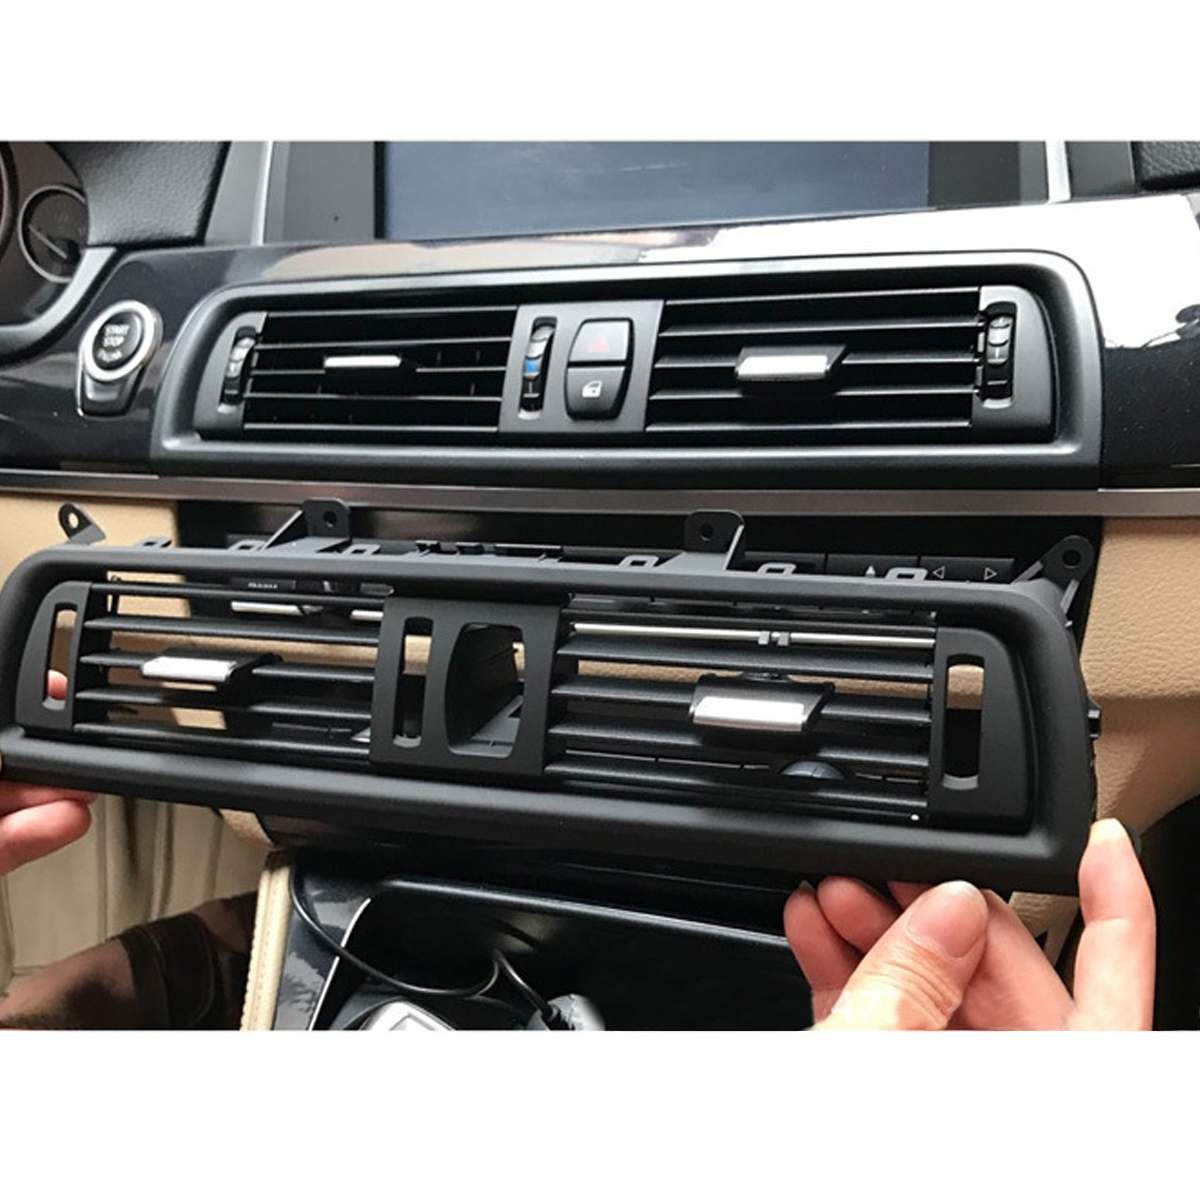 SODIAL Front Dash Panel Center Fresh Car Air Outlet Vent Grille Cover for BMW 5 F10 F18